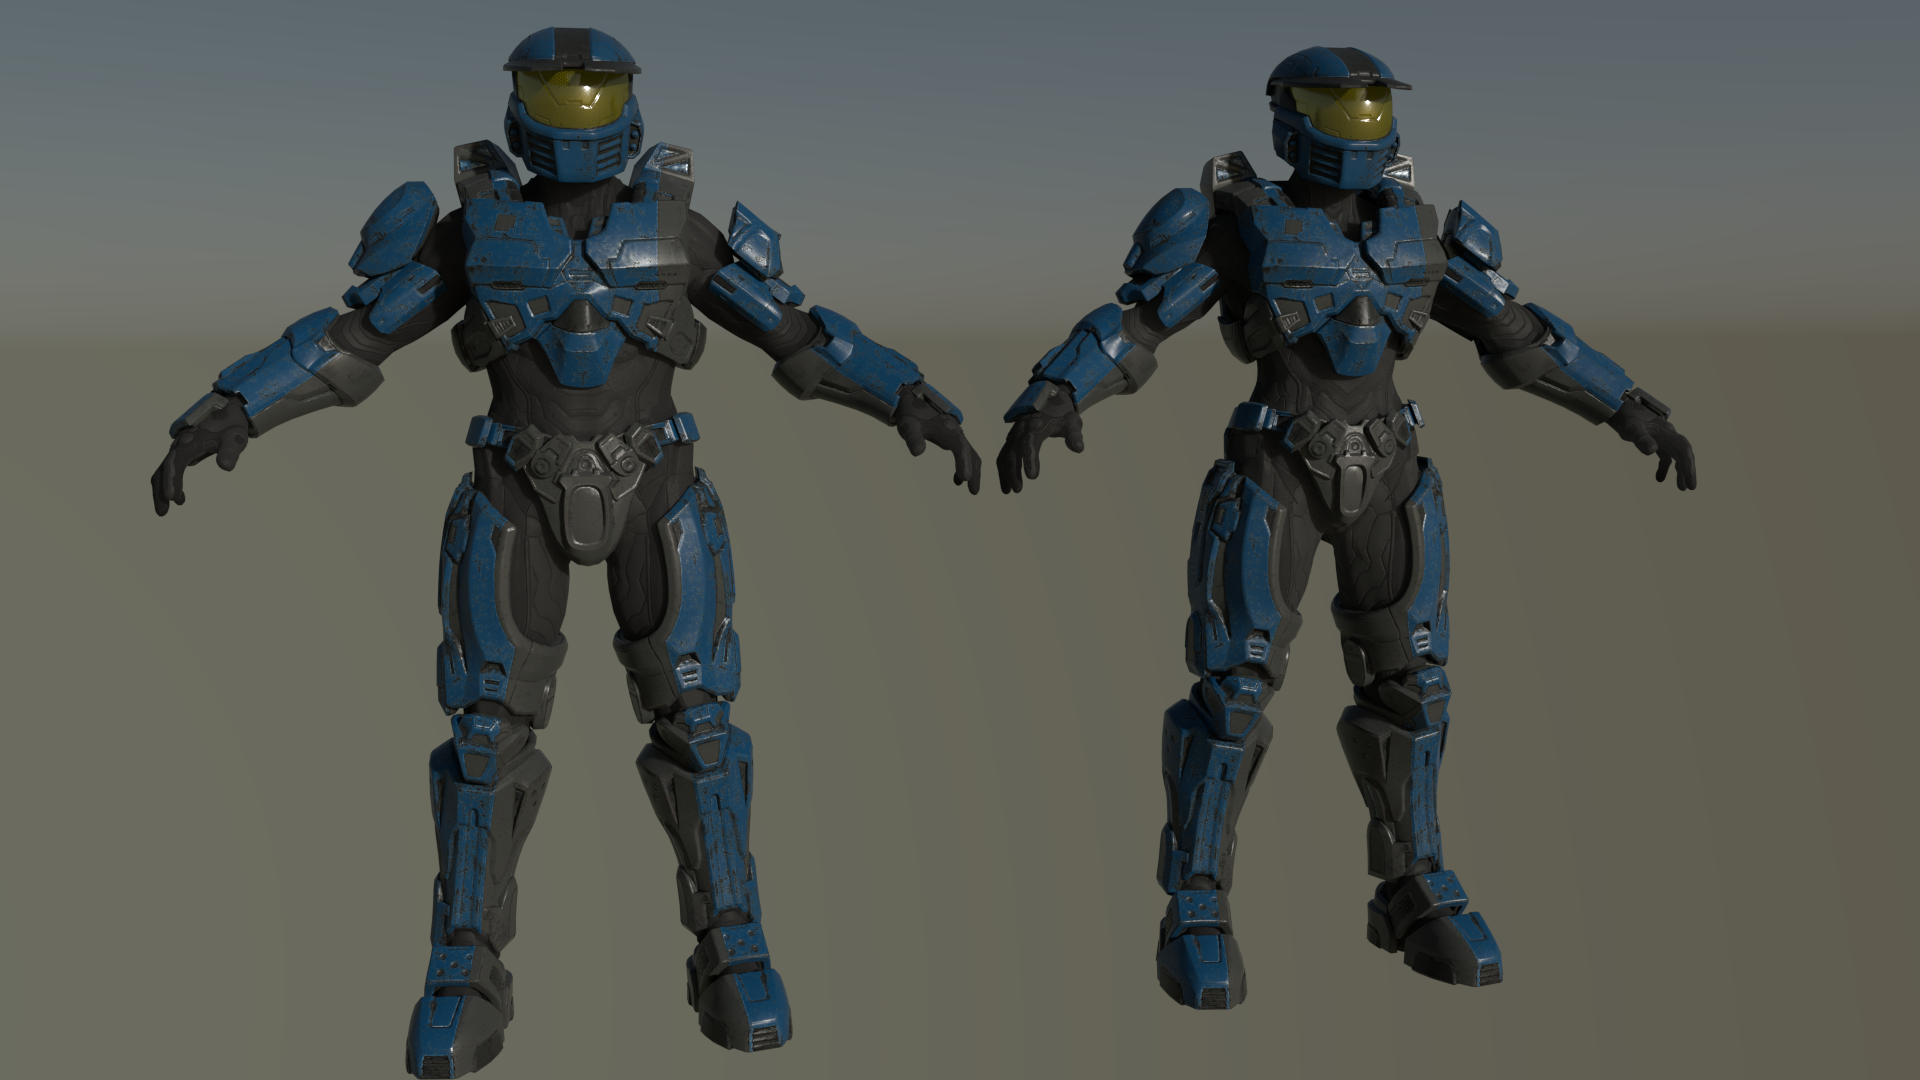 Halo 5 Mark Iv Characters Blender By Grouptree24 Red Vs Blue Halo Halo 5